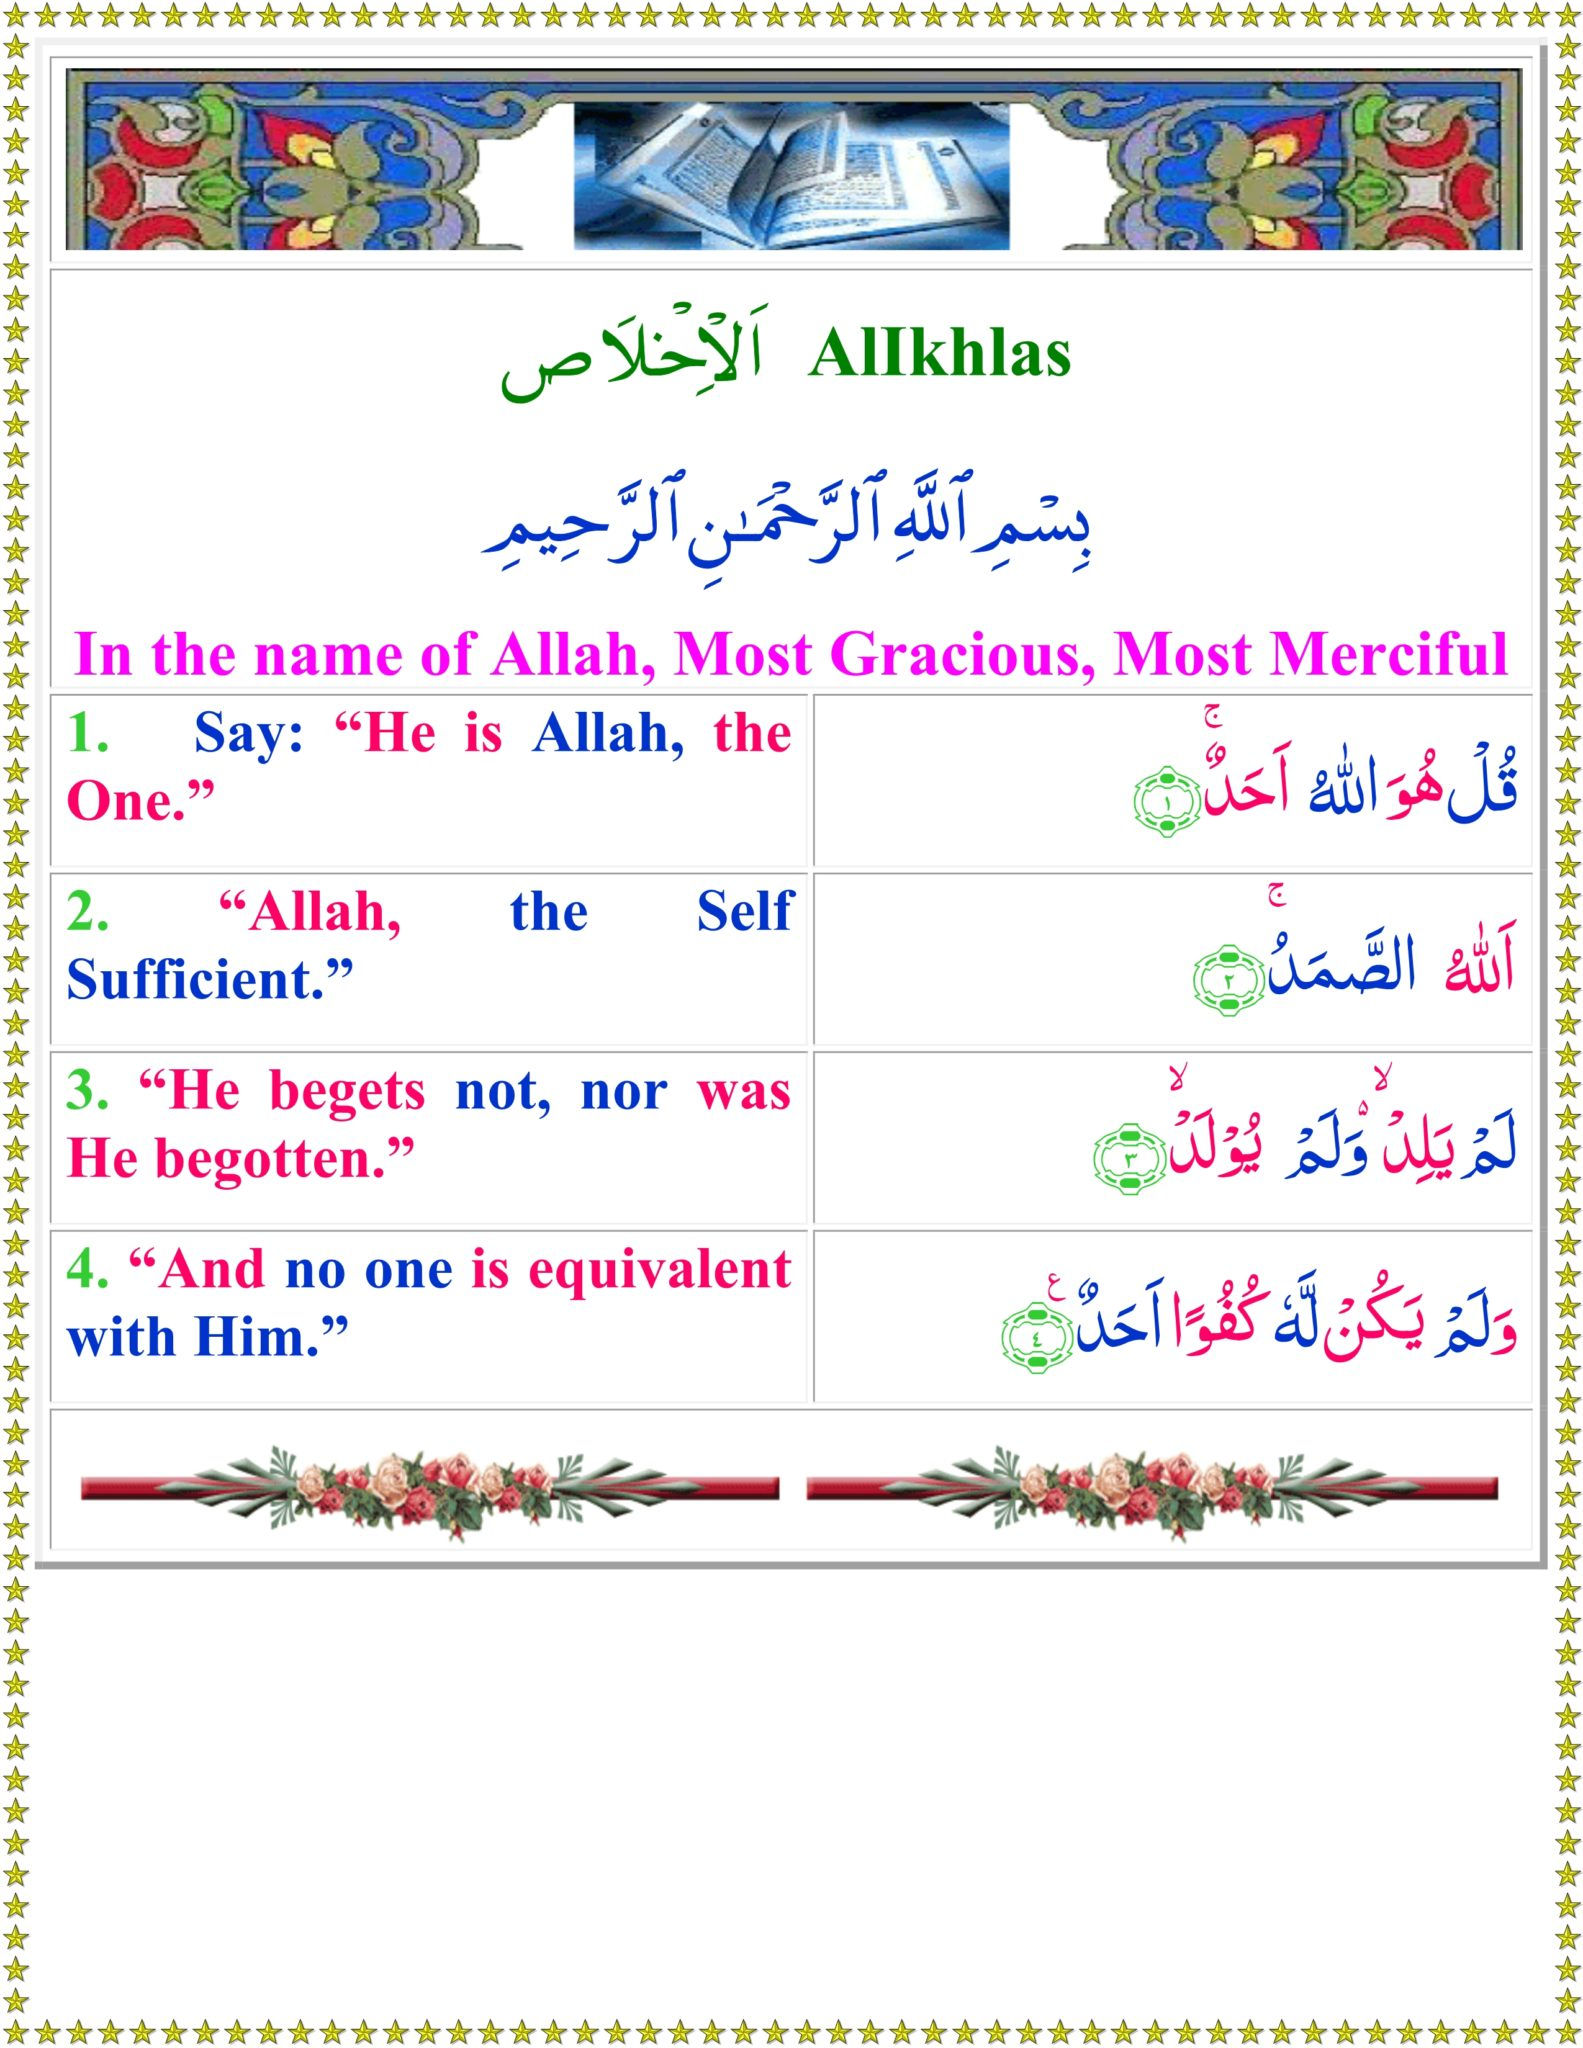 Surah Ikhlas translation in English